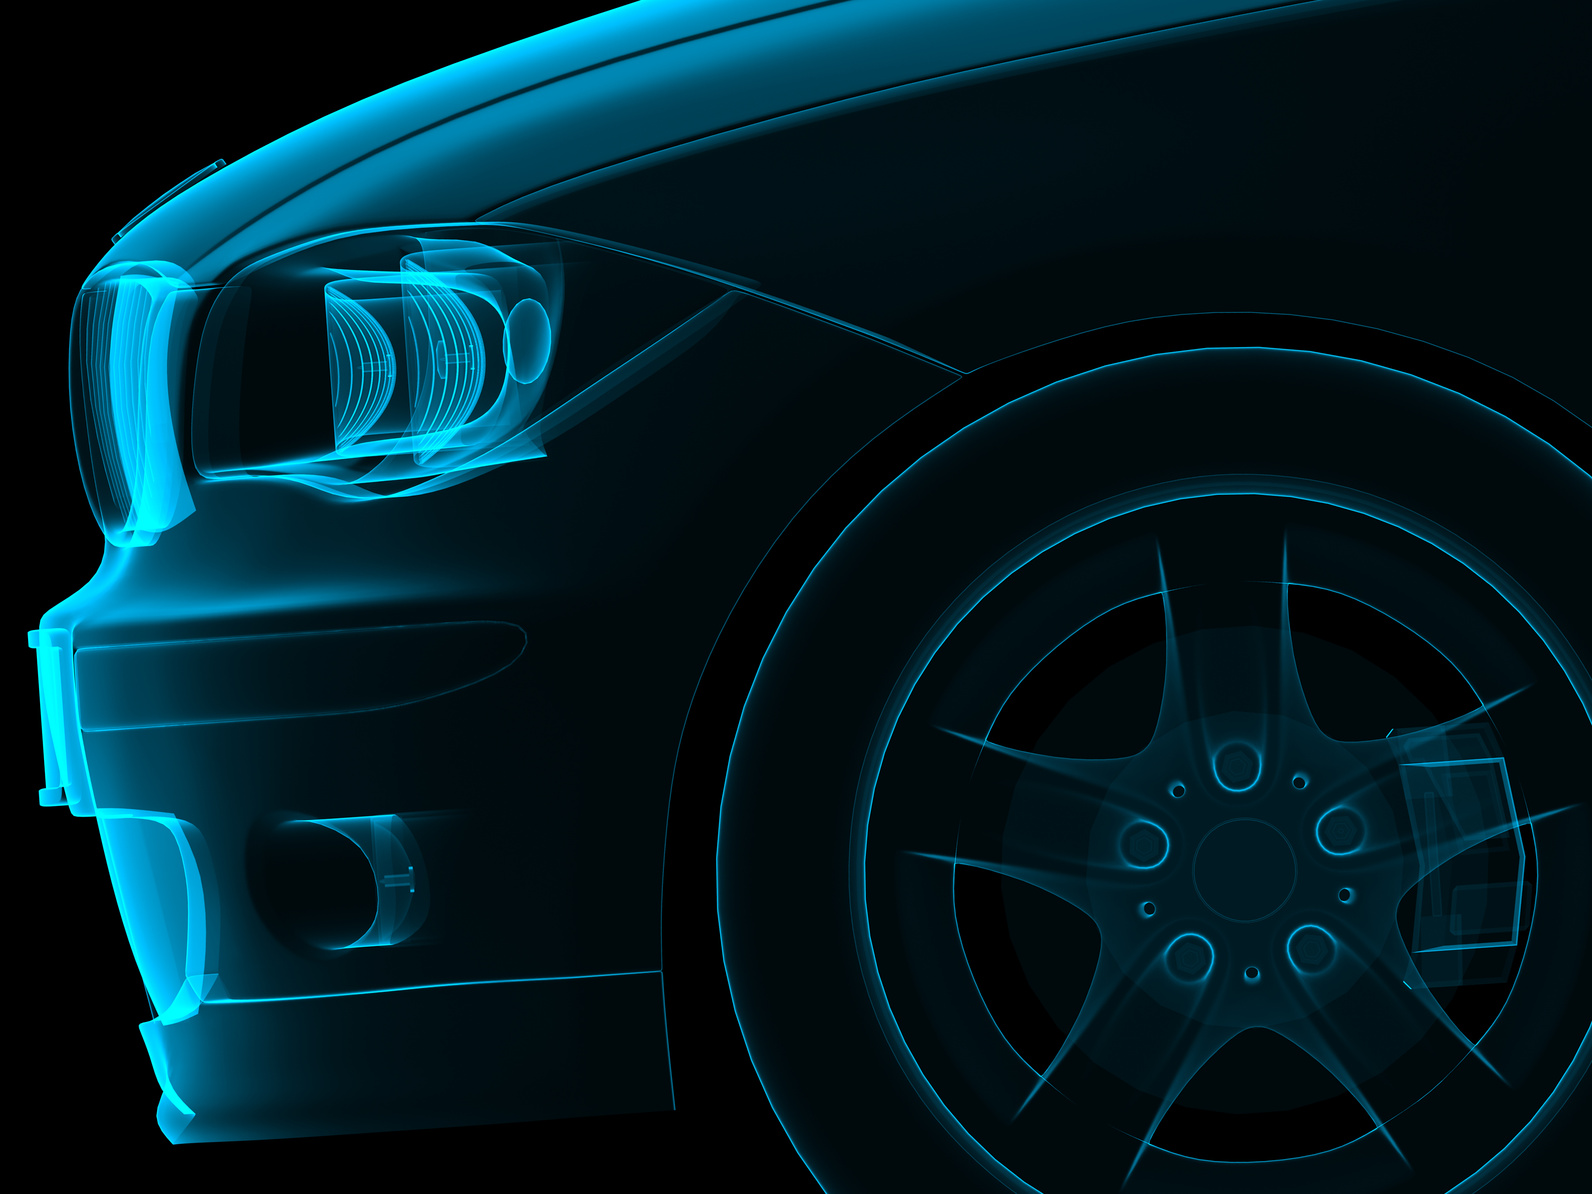 graphic of the front of a BMW 3 Series